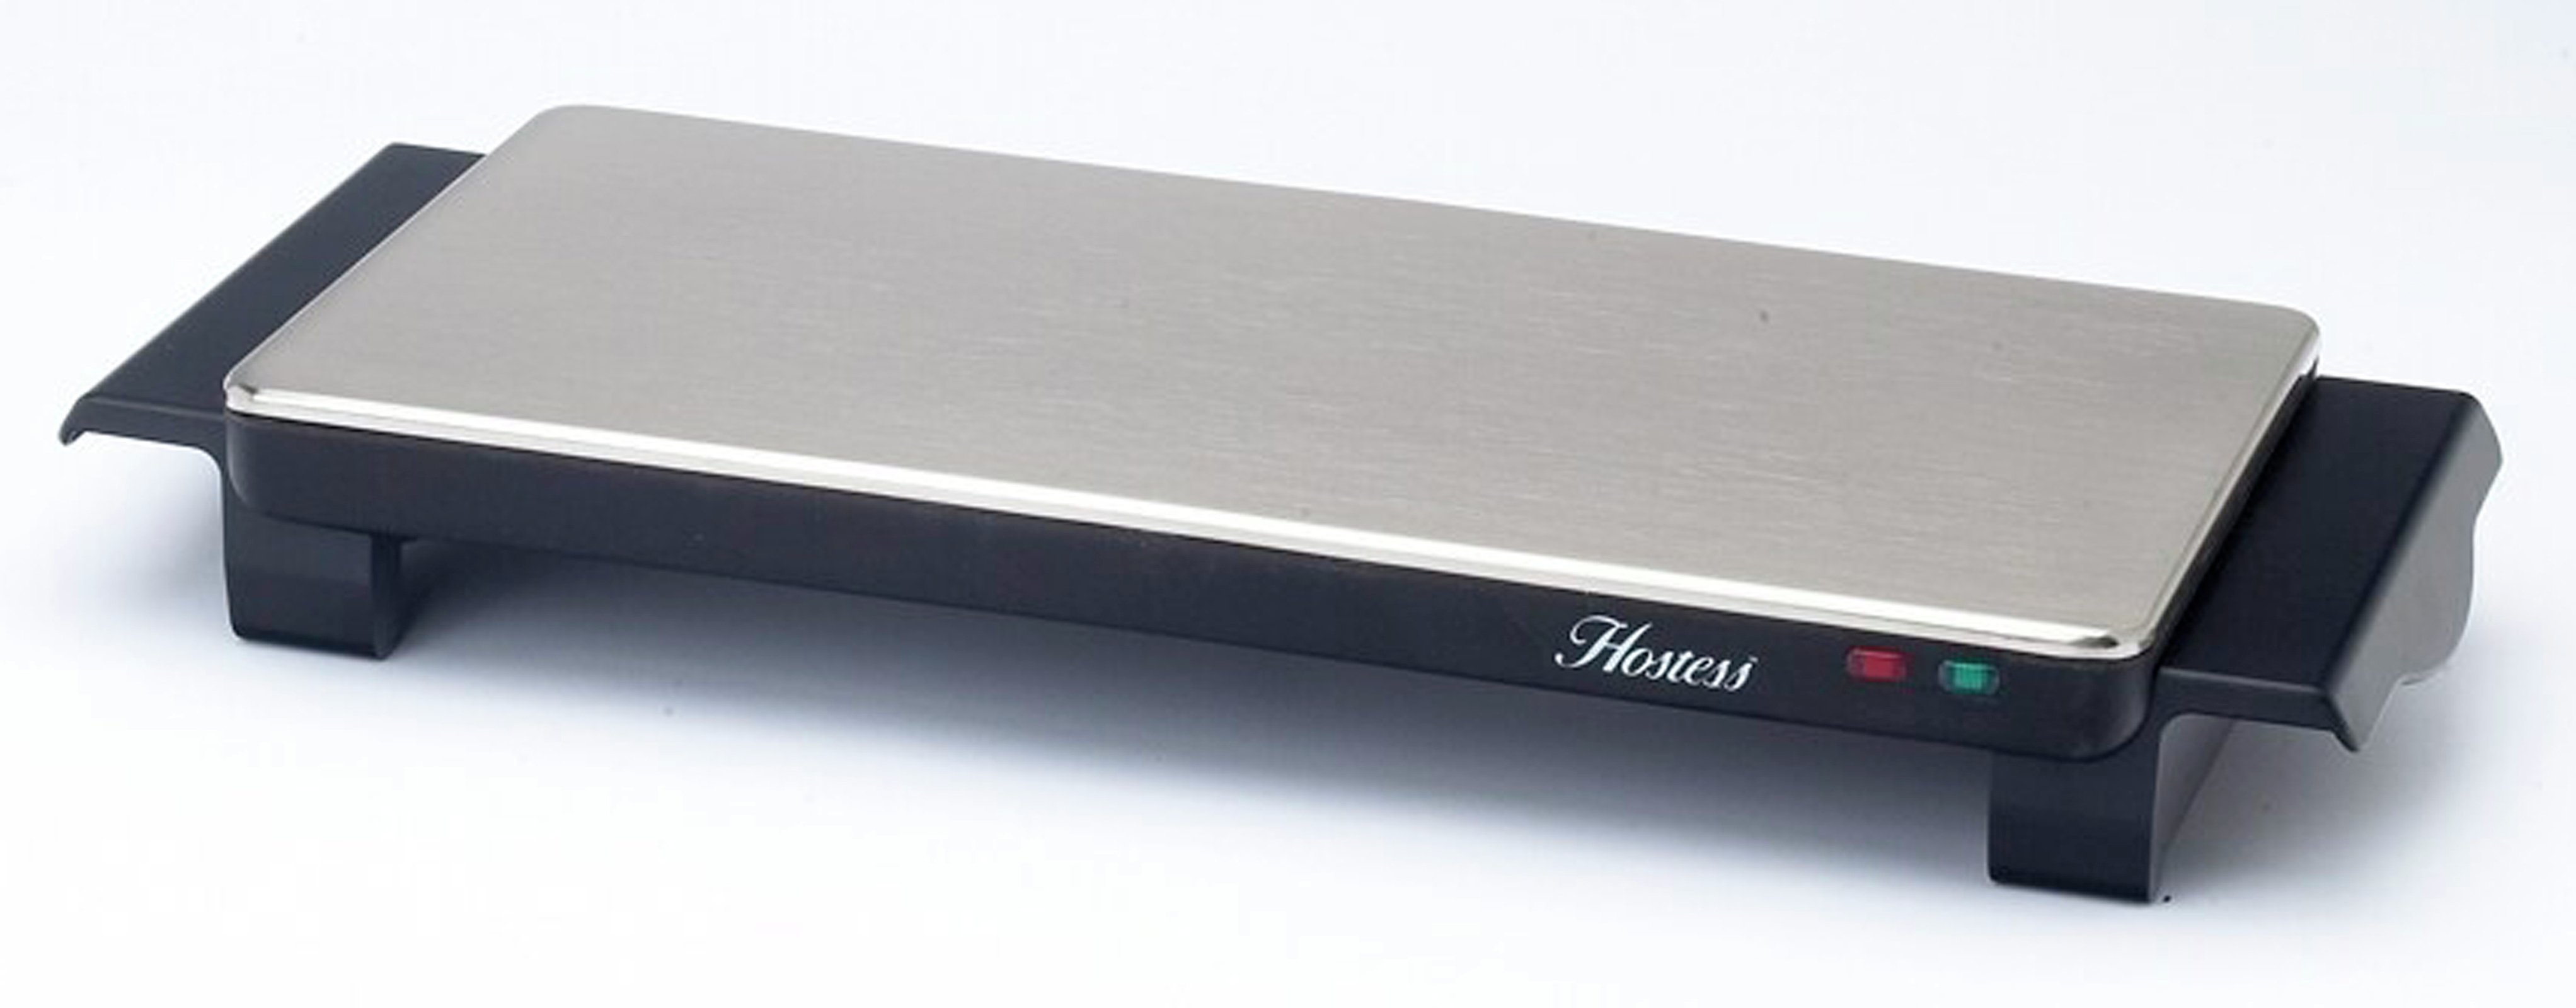 Image of Hostess HT4020 Hot Tray - Small.